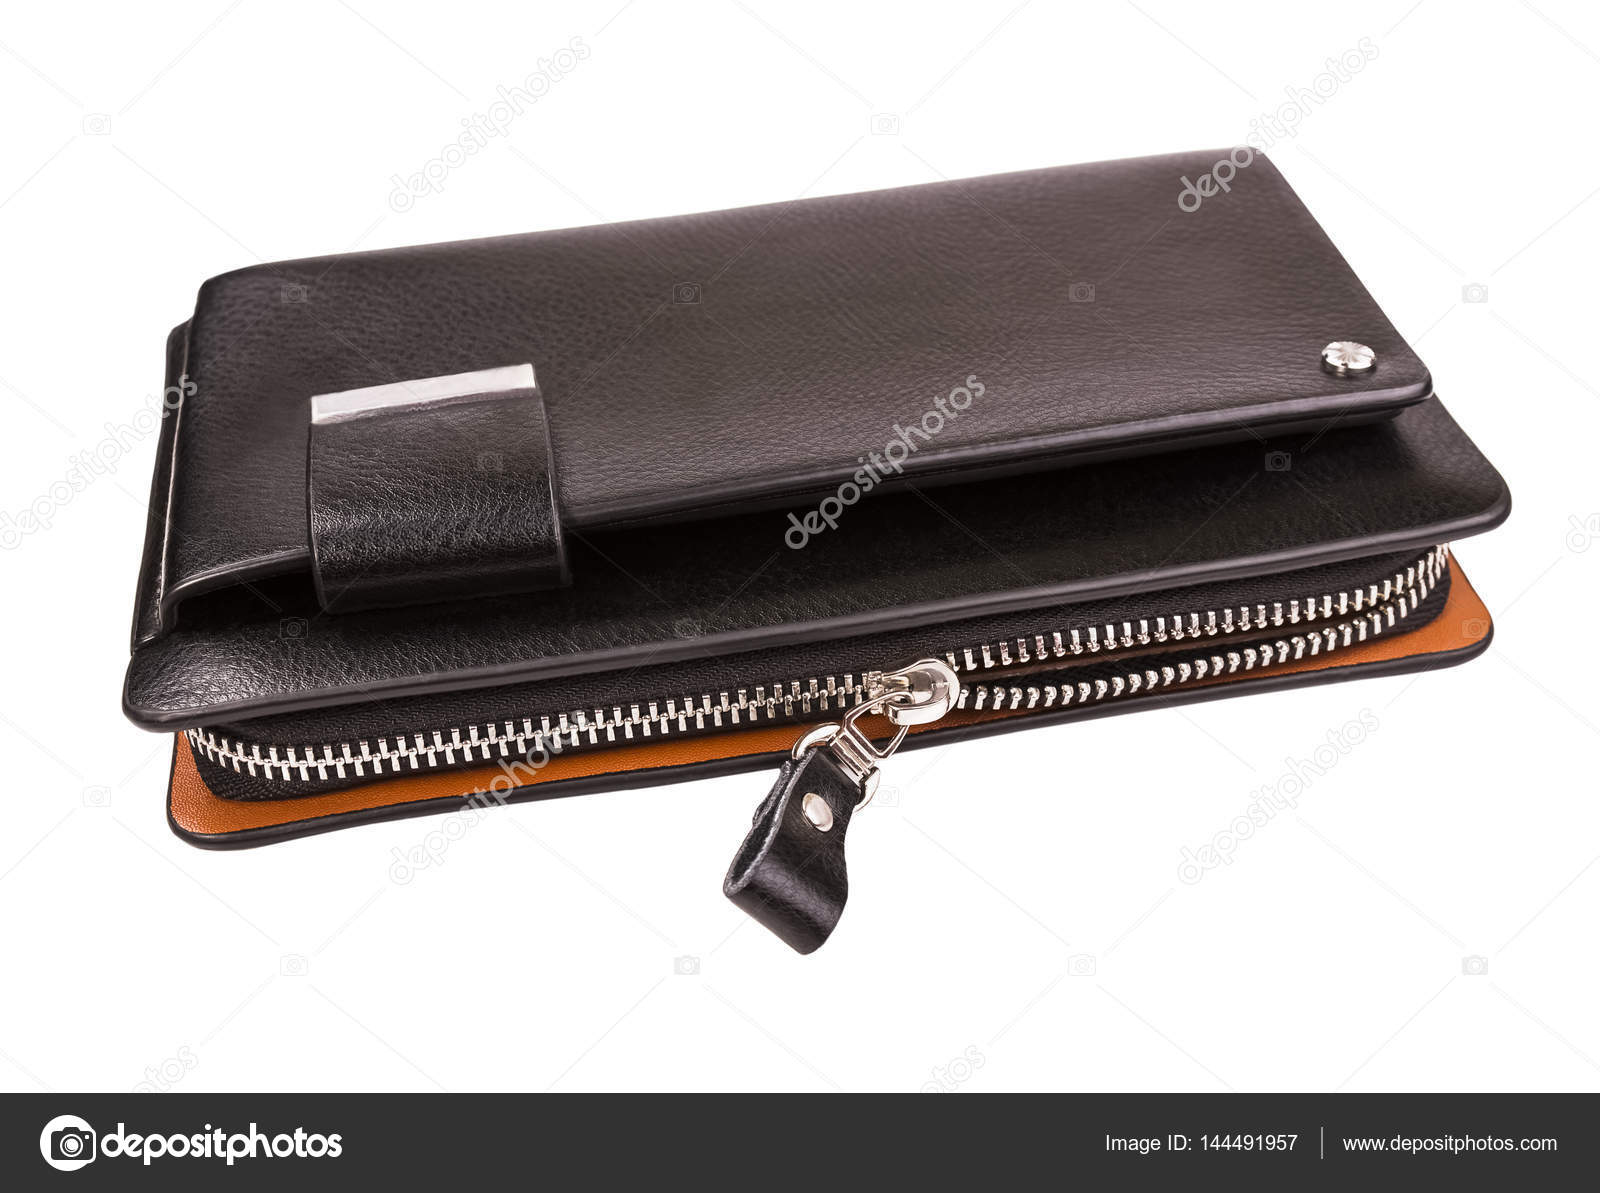 02df74b7 Indoor men's wallet on the background of isolation; Clutch bag with zipper  — Photo by ...